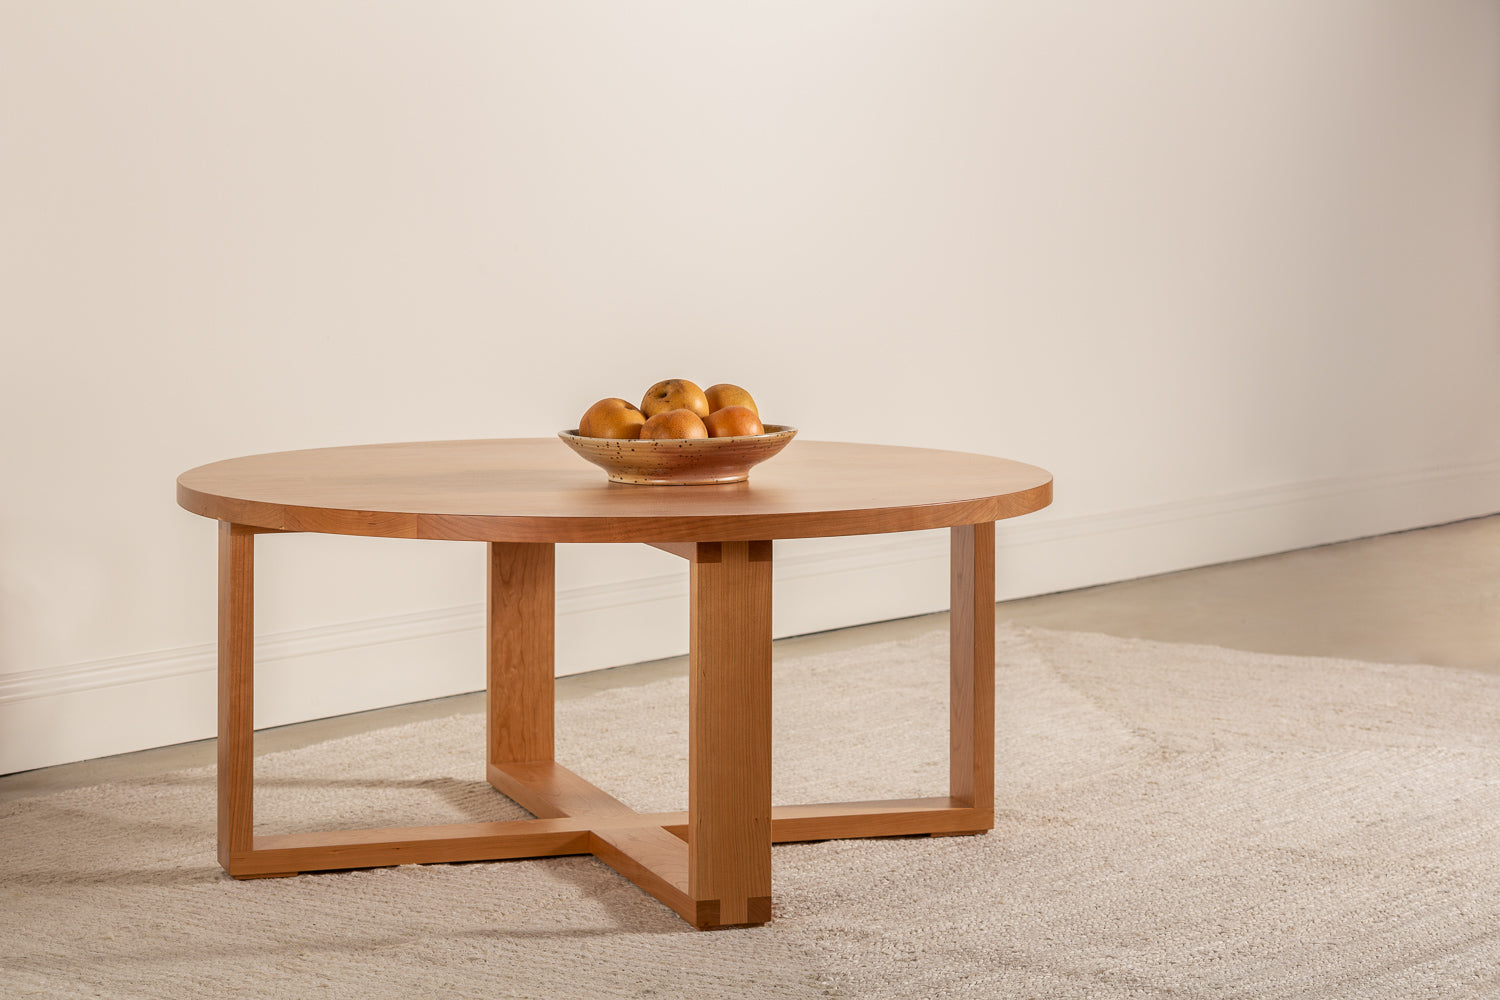 Round Lokie coffee table shown in cherry with blow of fruit